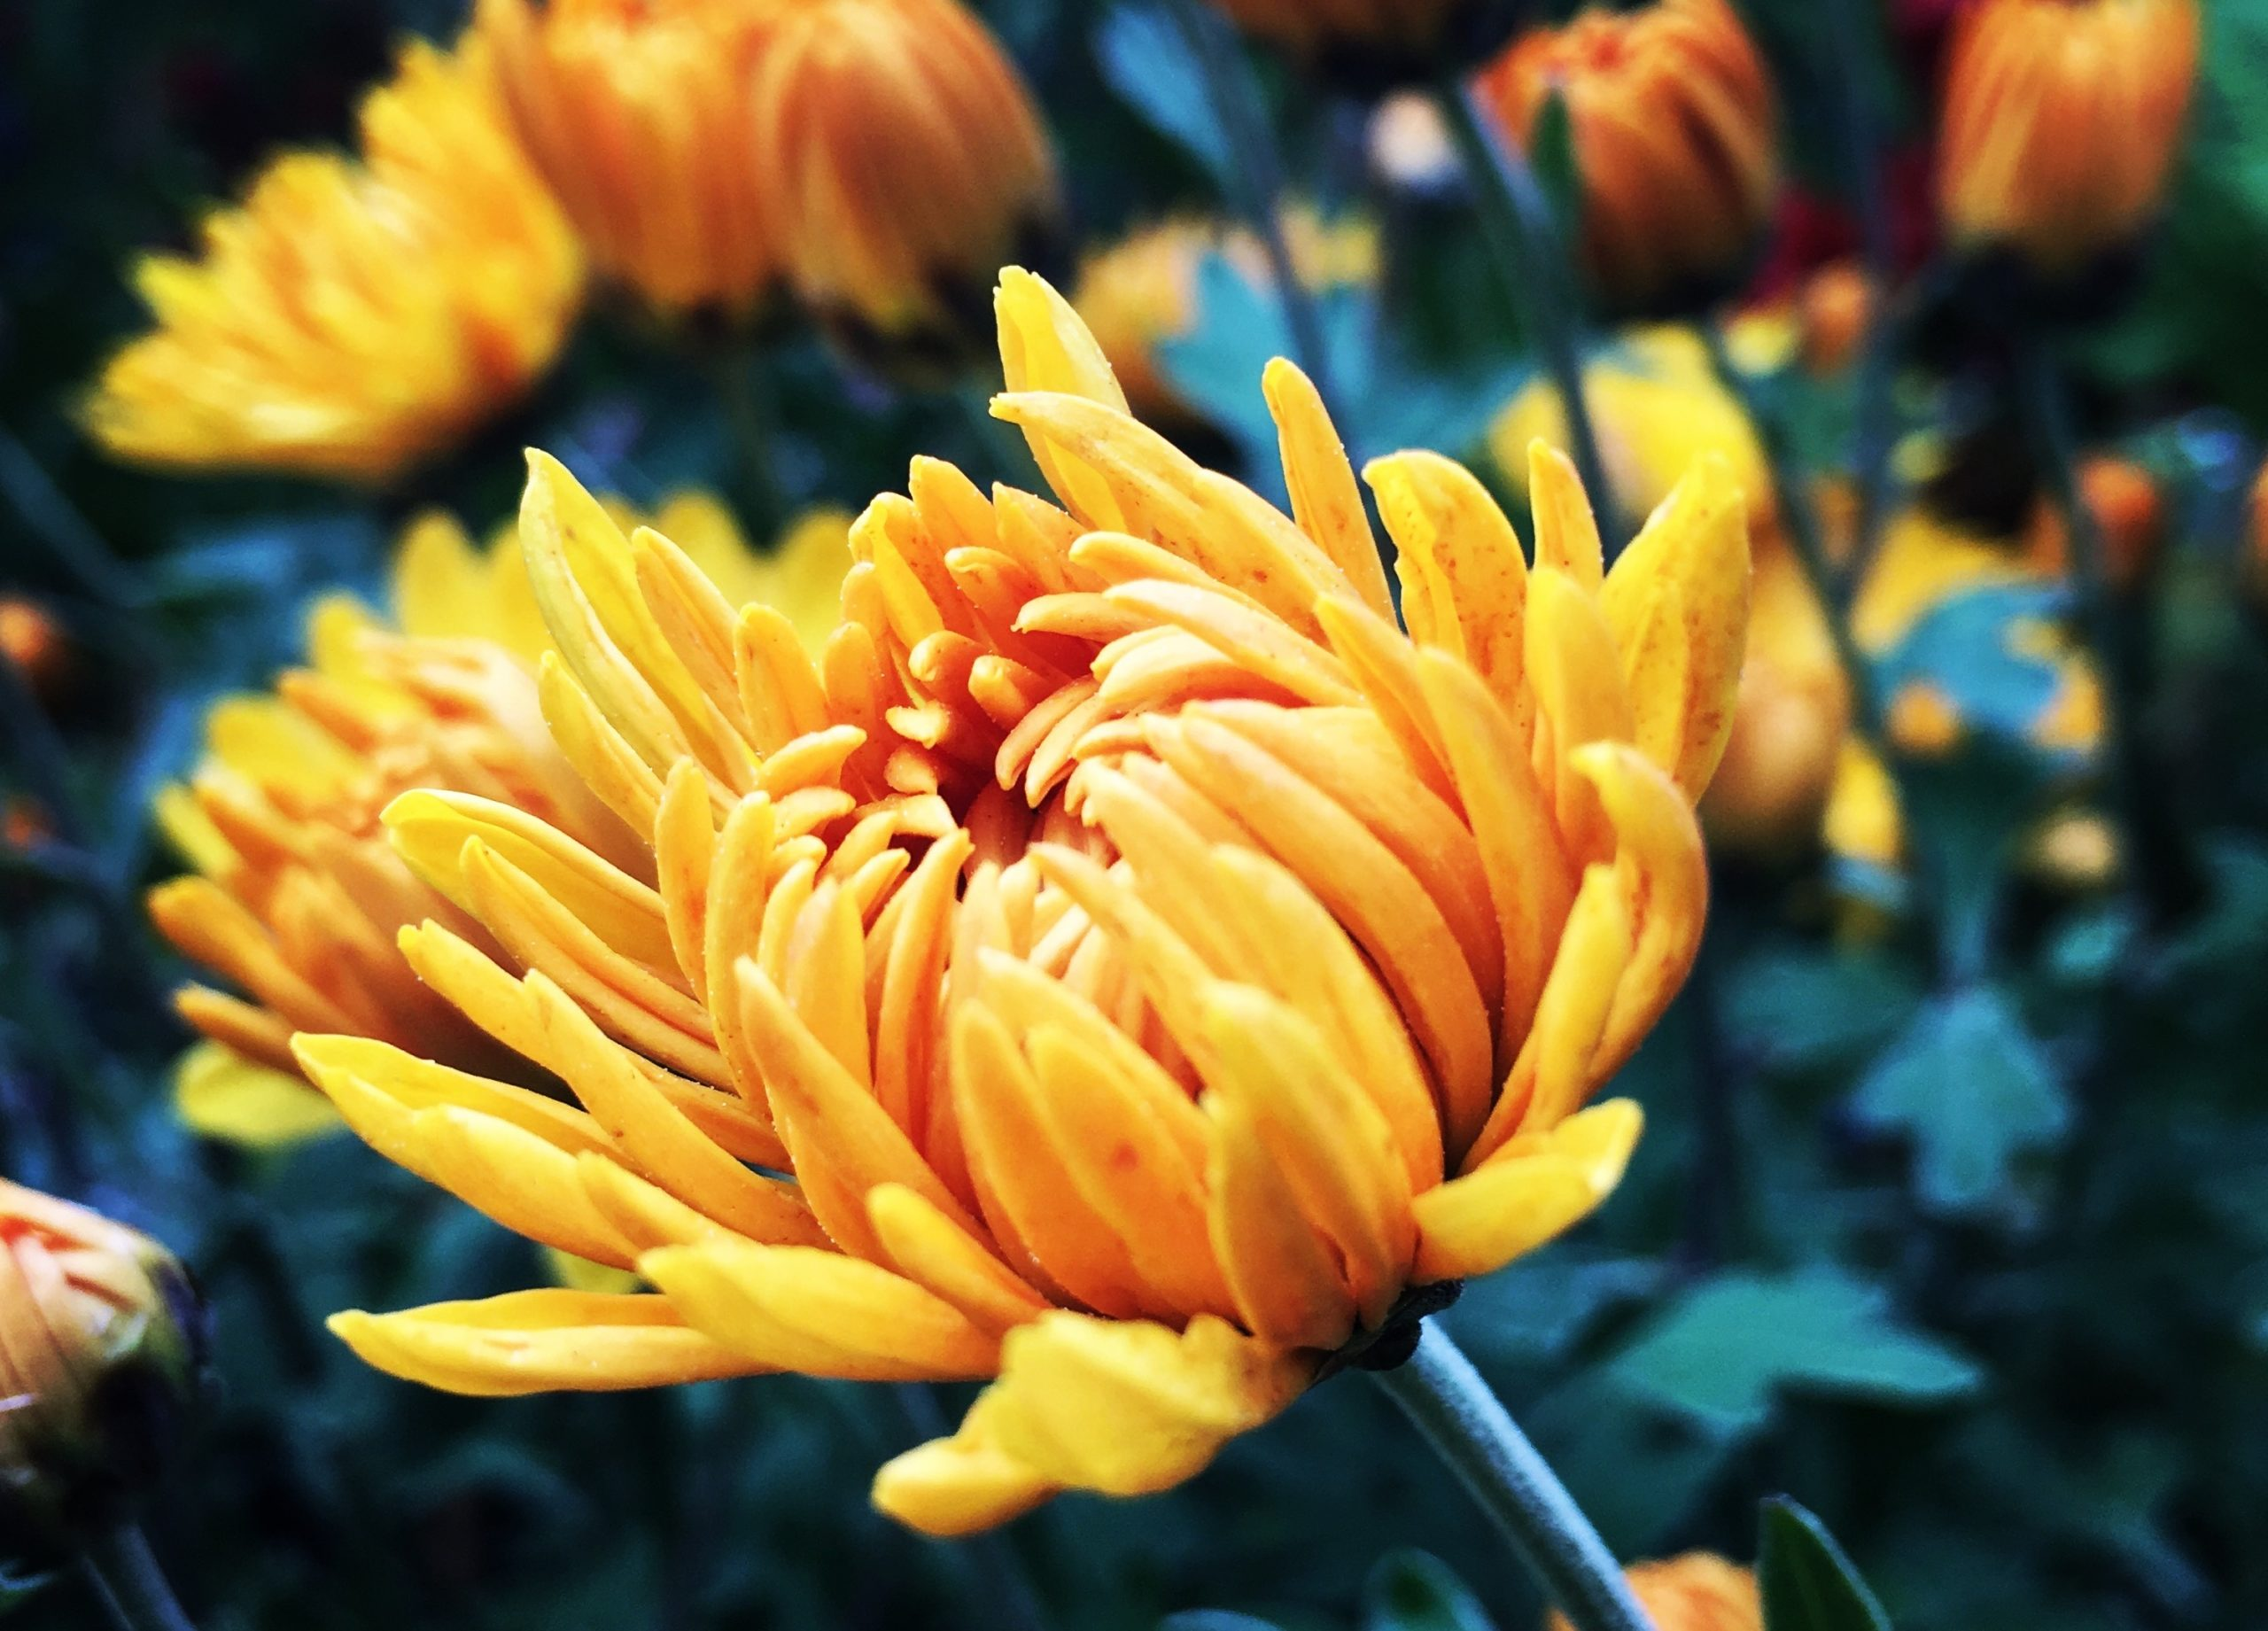 Beginnings are my favorite. They are often as pretty as this flower, unfurling its golden petals as it embraces life